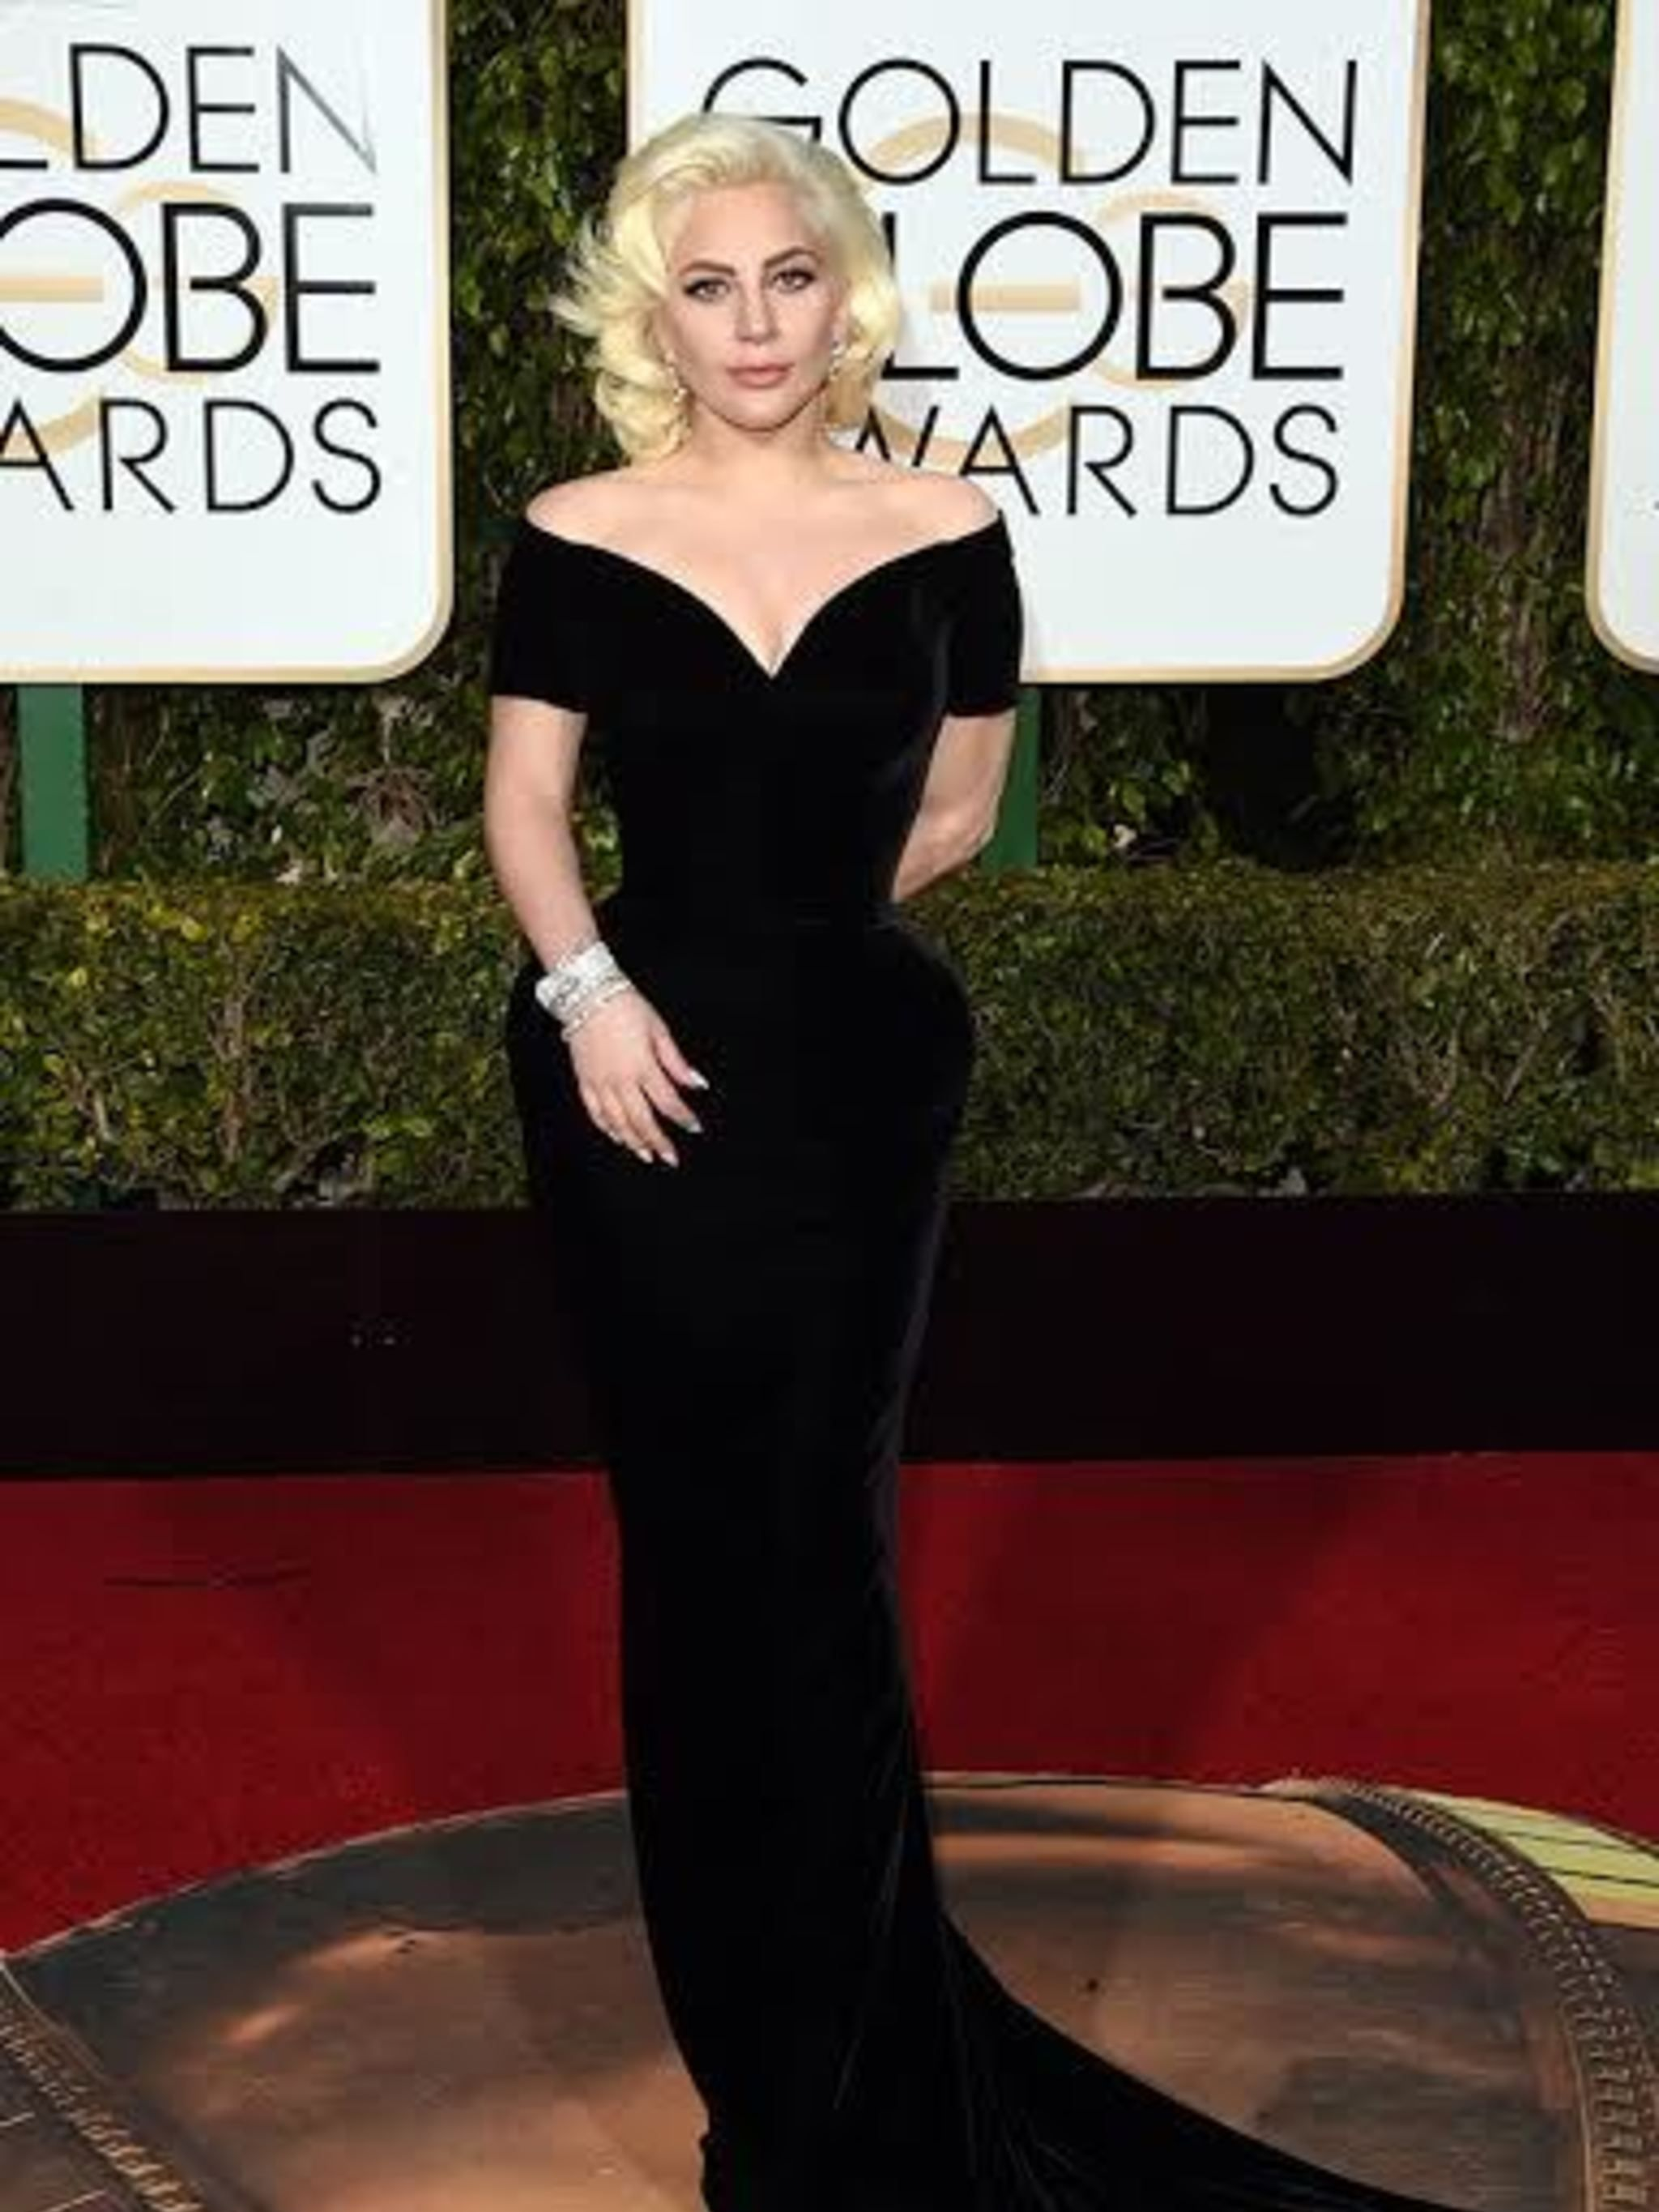 <p>Lady Gaga in Atelier Versace:Take Lady Gaga's theatrical, bold attitude, add in Versace's all out glamazon styleand voilá, you've got a red carpet moment of epic proportions. The curvy silhouetteand classic black velvet fabric of this dress suit Ga